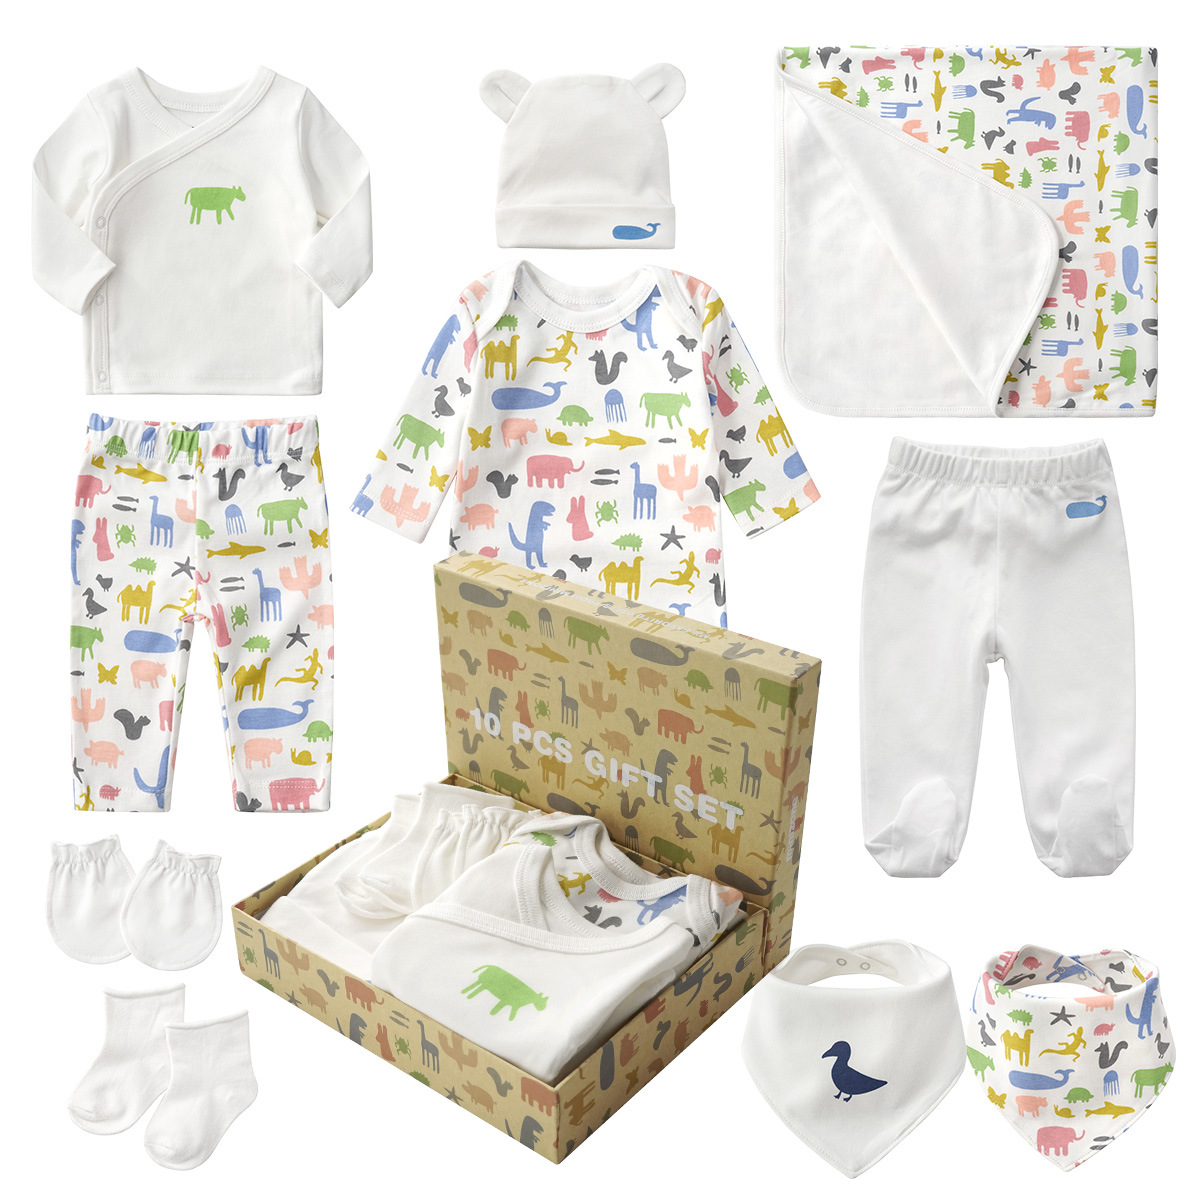 10pcs Baby Products Boy And Girls Full Moon Fashion Sets Spring And Autumn Baby Best Gift Newborn-baby-clothes Unisex Set Cotton cotton 10 piece sets newborn clothes gift box spring and autumn new born baby suit mother and baby full moon kids gift clothes